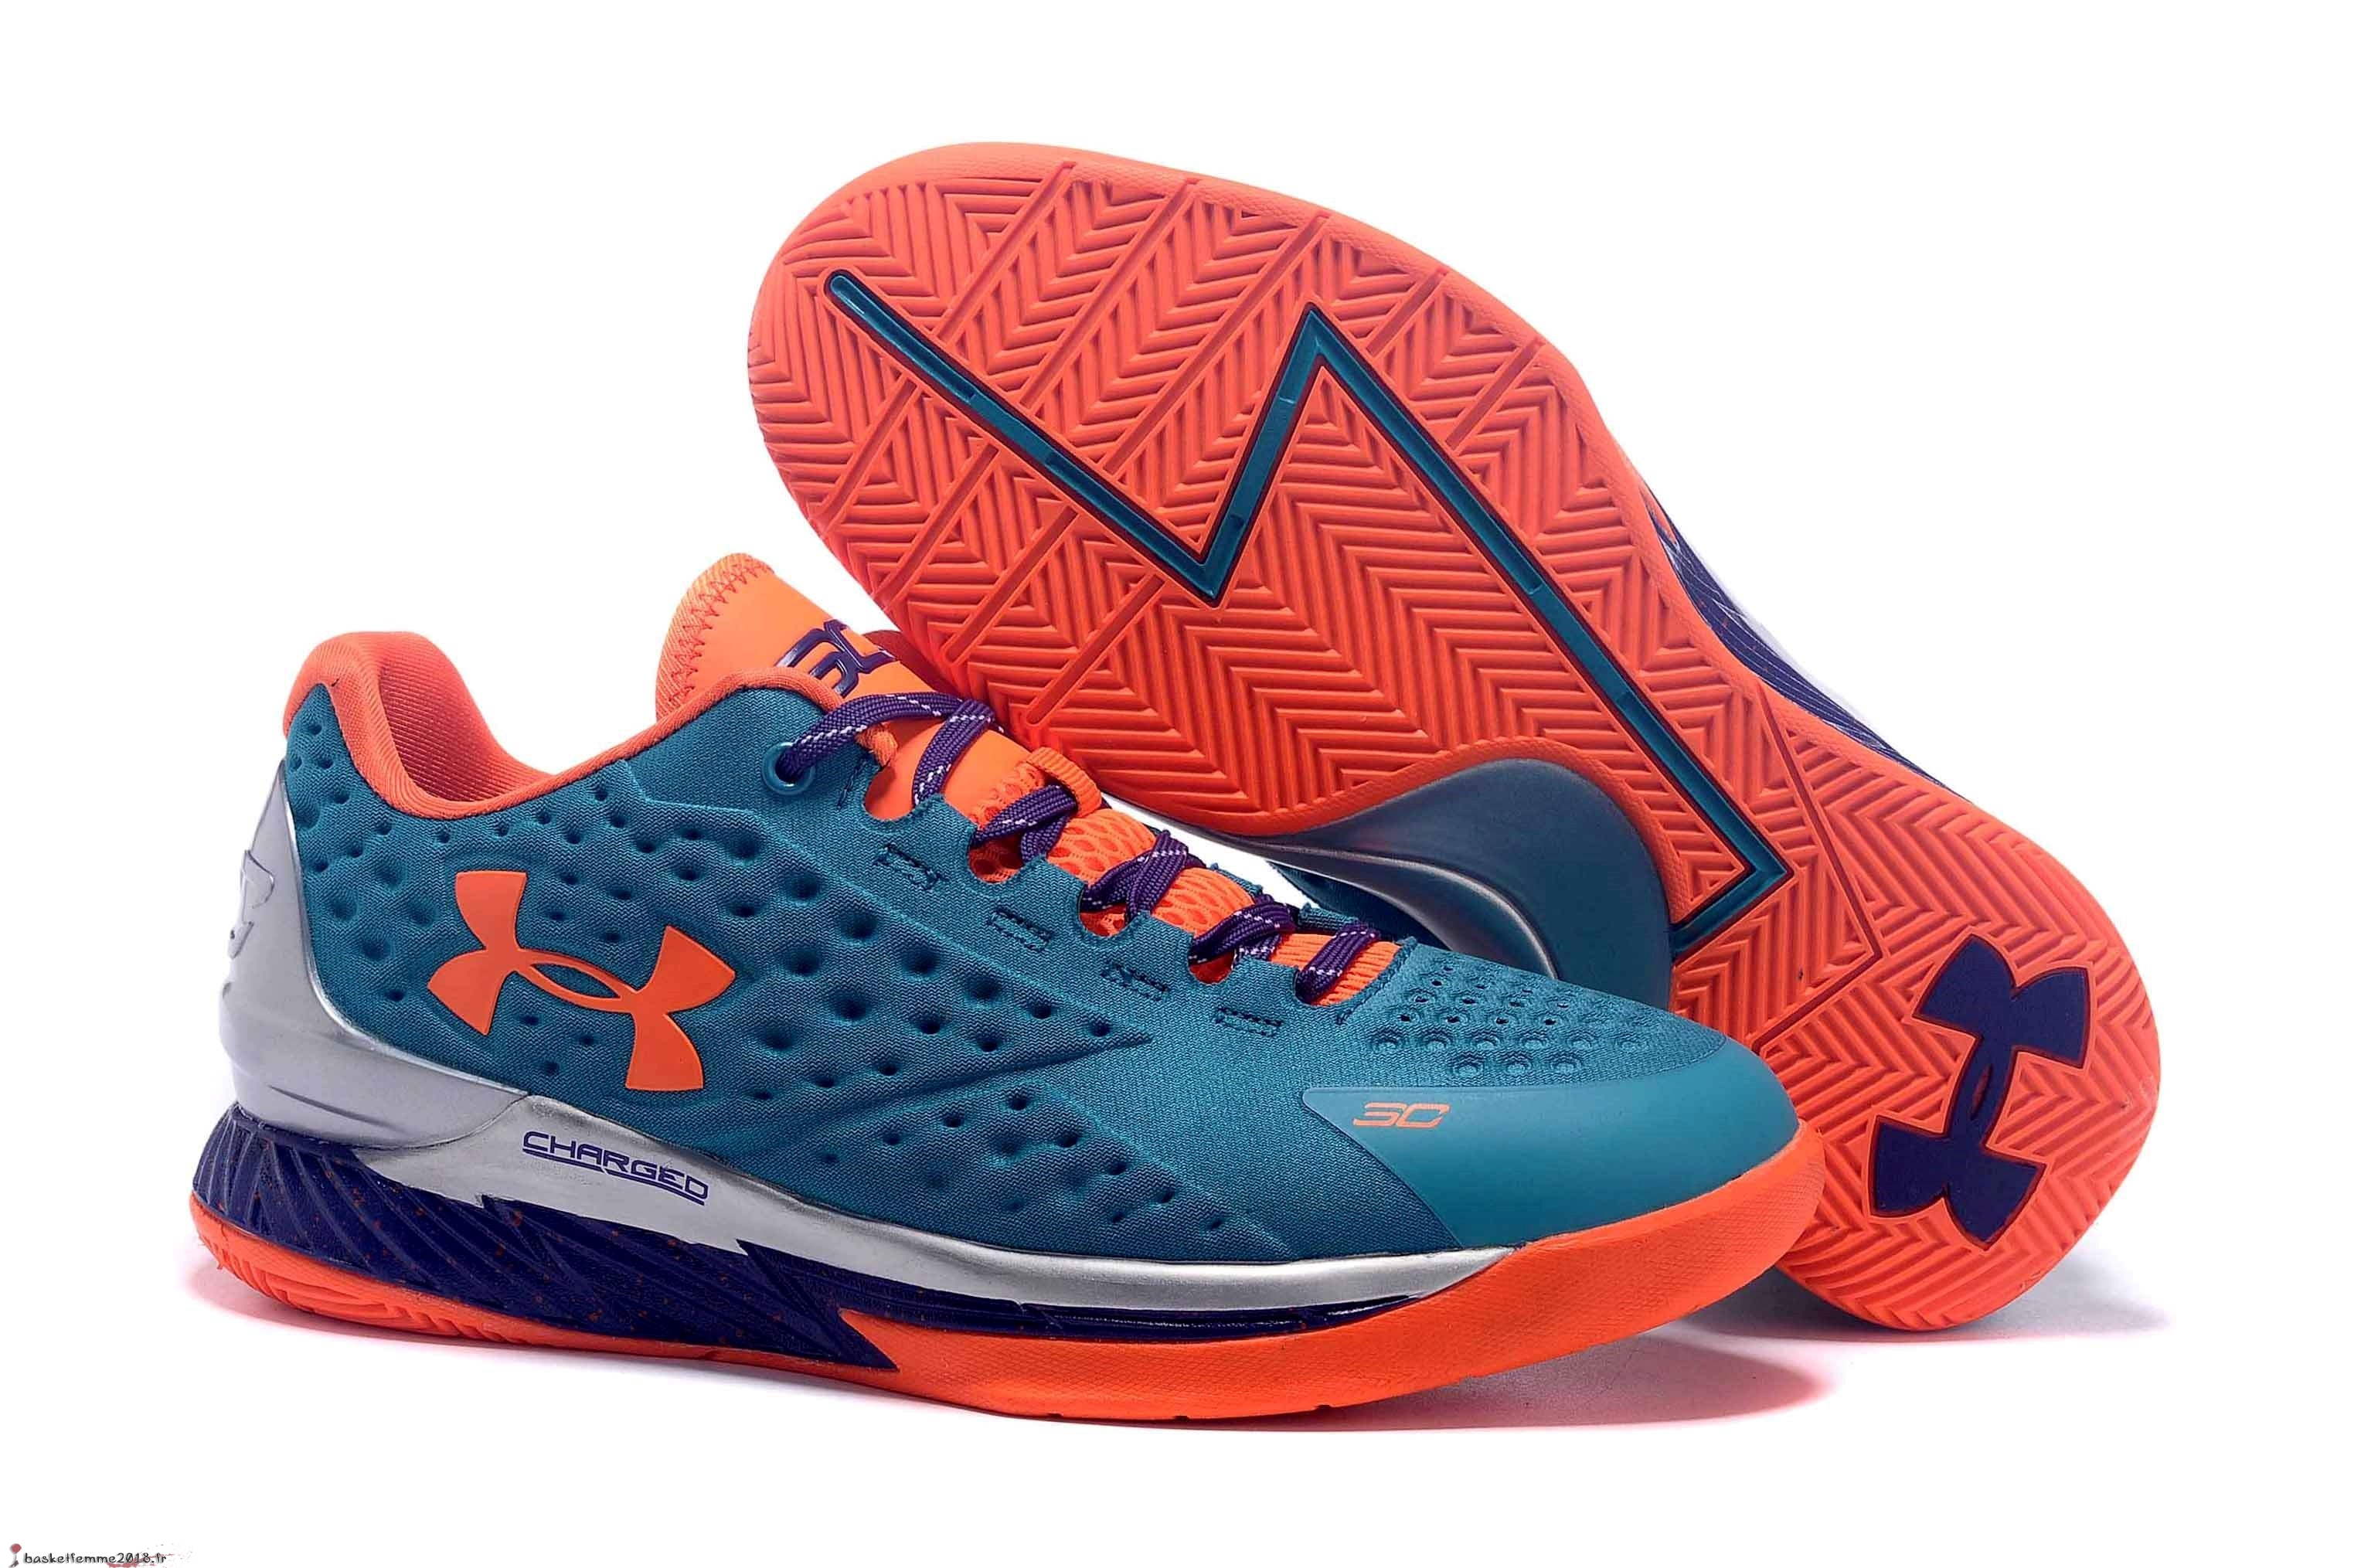 Stephen Curry 1 Femme Bleu Orange Chaussure de Basket